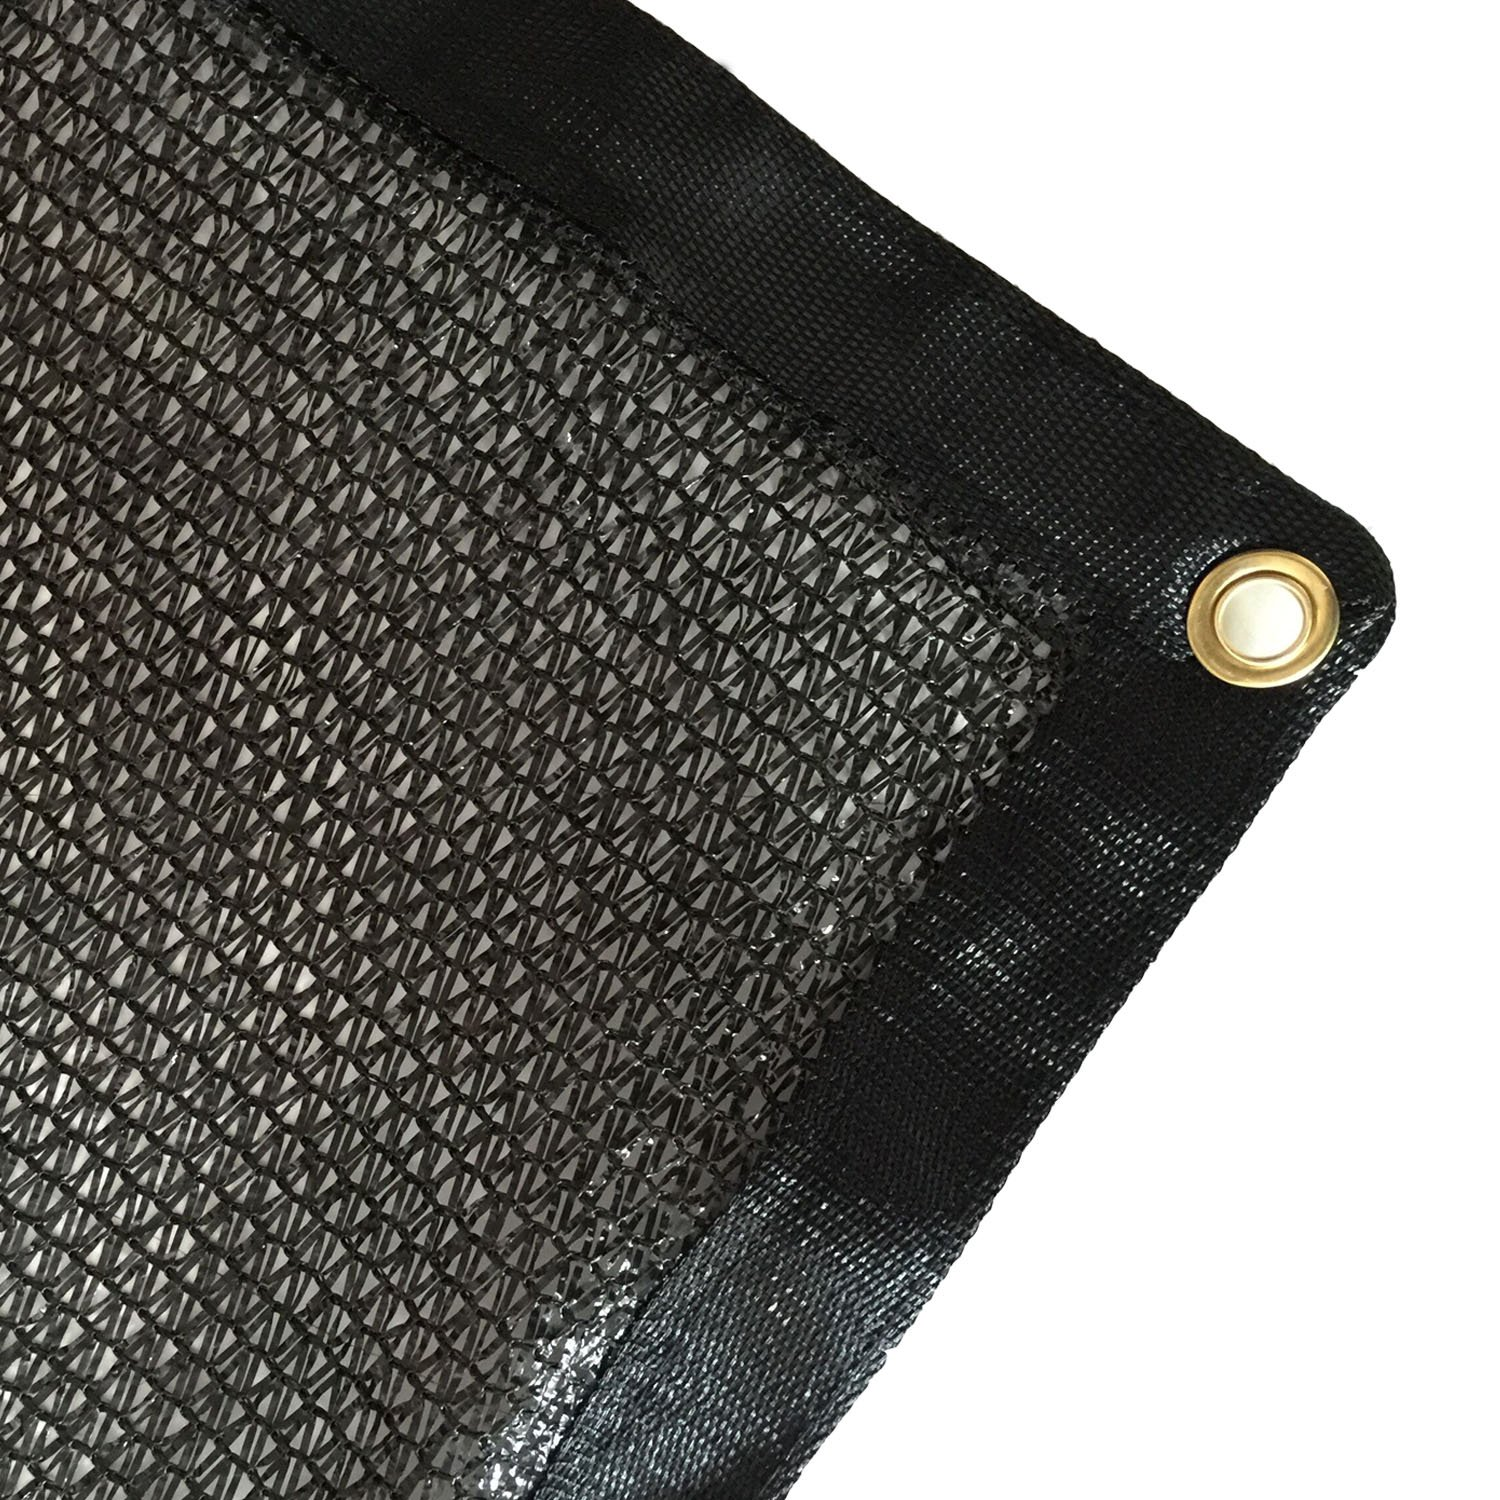 Yisin 40 Black Shade Cloth Taped Edge with Grommets UV 12 ft X 10 ft